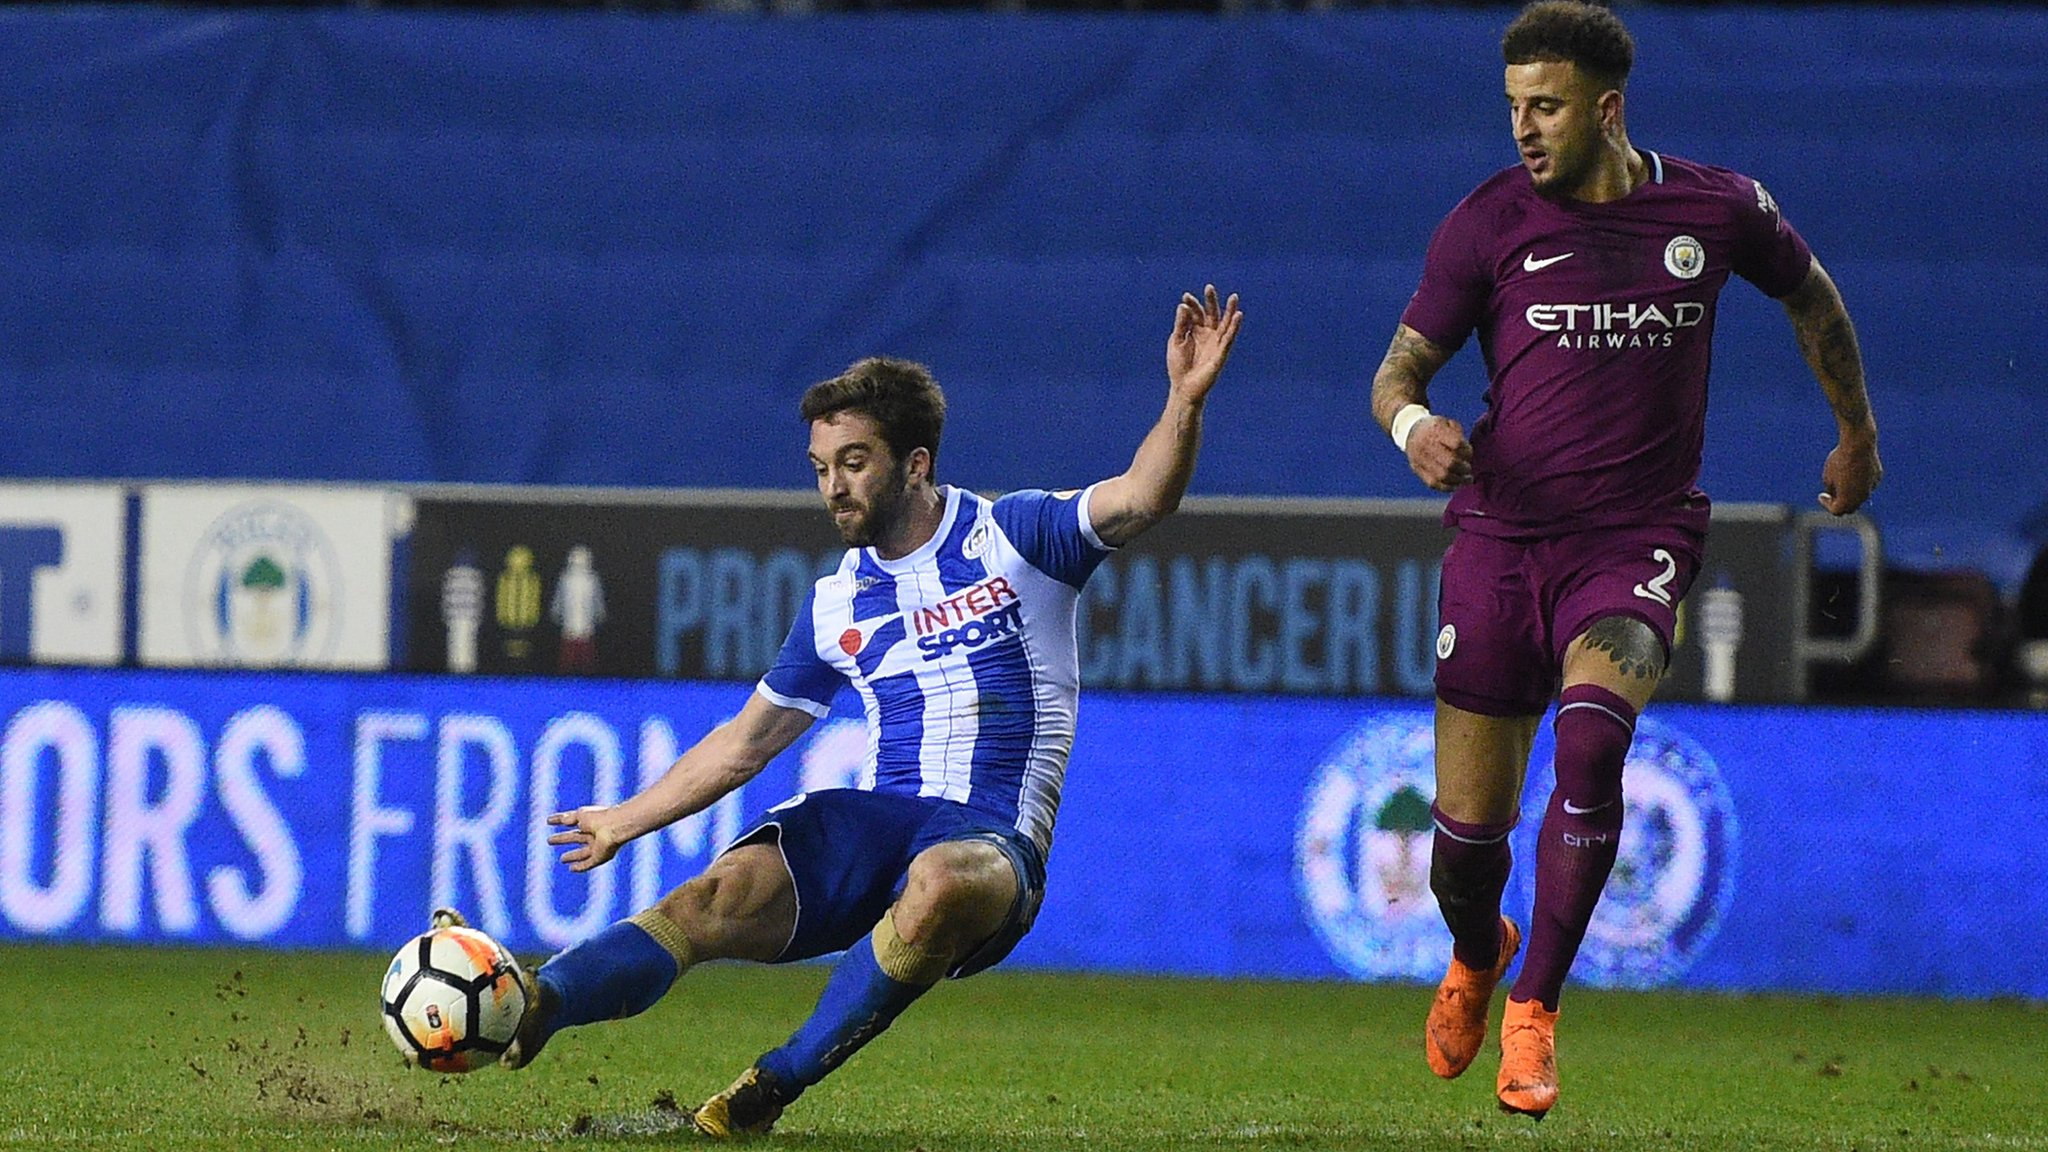 (BBC News):#FA Cup: #Wigan striker Will Grigg scores a crucial opening goal against.. https://t.co/mti5YZMkQK https://t.co/TPSrrHr050